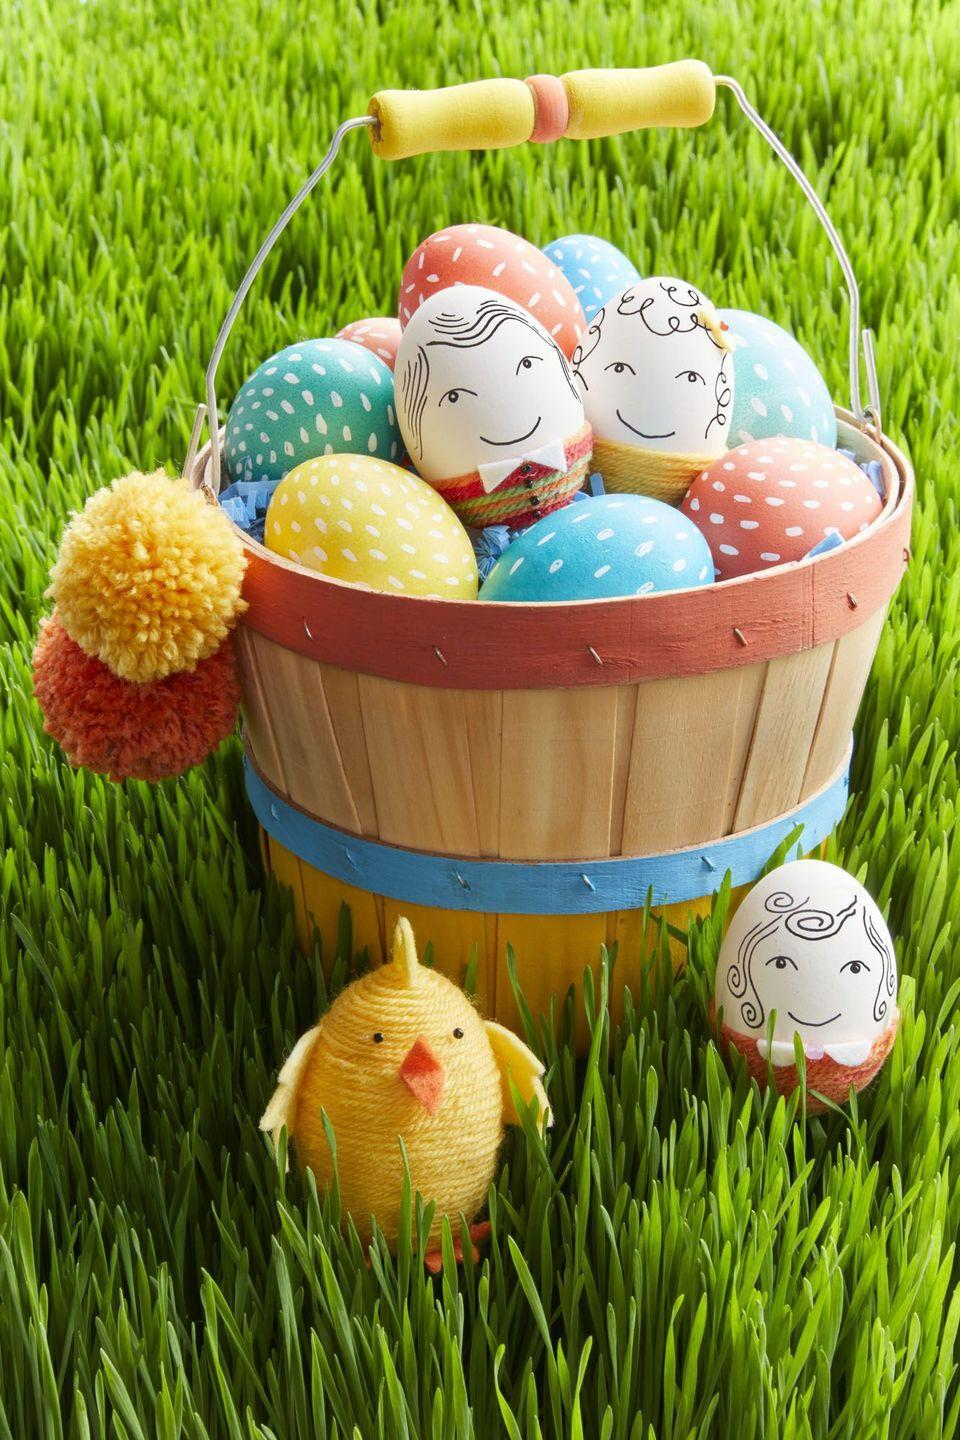 """<p>Turn a bushel basket into a cheery catchall for Easter loot by adding a few bright stripes of paint and a pair of homemade pompoms. Add colorful <a href=""""https://www.womansday.com/home/crafts-projects/g2216/easter-eggs/"""" rel=""""nofollow noopener"""" target=""""_blank"""" data-ylk=""""slk:Easter eggs"""" class=""""link rapid-noclick-resp"""">Easter eggs</a> inspired by chicks and cute characters for some extra festive flair.</p><p><strong>Best dressed:</strong> Draw a face and hair on a ceramic egg. Wrap the bottom third of egg in thick yarn (tip: work from the middle down) and secure by brushing on white craft glue in sections. Create details like collars, bows, and buttons with felt and beads.</p><p><strong>Dashing Design Egg:</strong> Follow tradition and dye your eggs first. Once dry, draw a series of short lines with a white paint marker.</p><p><strong>Fuzzy Chick:</strong> Wrap a ceramic or wooden egg in yarn (tip: start at the top and work down) and secure by brushing on white craft glue in sections as you work. Use templates to make felt wings, feet, beak, and hair, and attach with glue. Glue on small black-bead eyes.</p><p><strong><strong><em><a href=""""https://www.womansday.com/home/crafts-projects/a18837631/easter-egg-templates/"""" rel=""""nofollow noopener"""" target=""""_blank"""" data-ylk=""""slk:Get the templates here."""" class=""""link rapid-noclick-resp"""">Get the templates here.</a></em></strong></strong></p><p><strong><a class=""""link rapid-noclick-resp"""" href=""""https://www.amazon.com/Elmers-Craft-Bond-Tacky-Clear/dp/B000LNR27U/?tag=syn-yahoo-20&ascsubtag=%5Bartid%7C10070.g.1751%5Bsrc%7Cyahoo-us"""" rel=""""nofollow noopener"""" target=""""_blank"""" data-ylk=""""slk:SHOP CRAFT GLUE"""">SHOP CRAFT GLUE</a></strong></p>"""